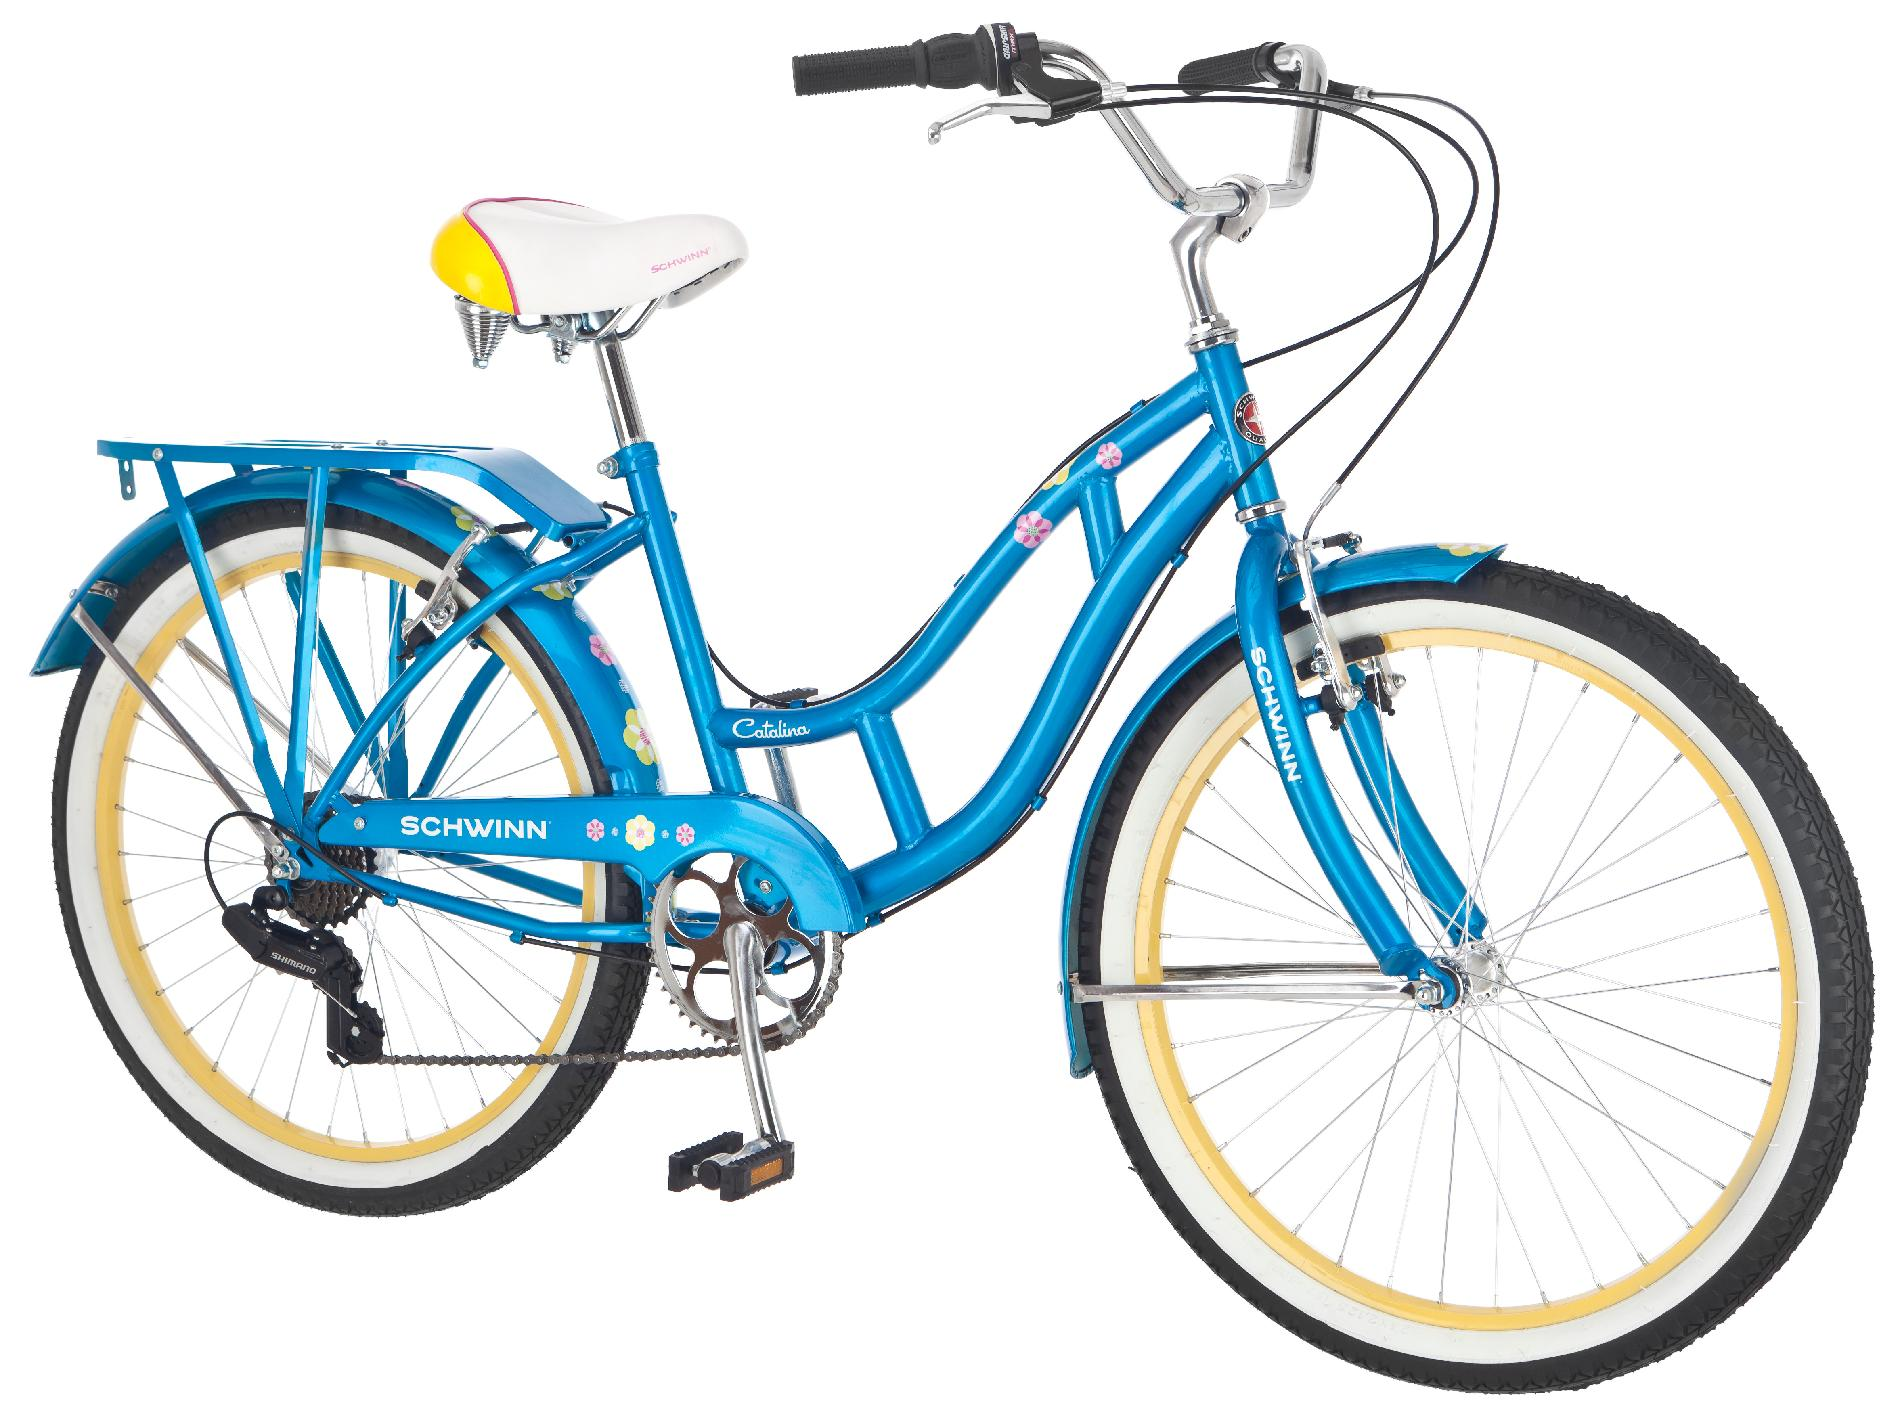 "Schwinn 24"" Girls' Catalina Cruiser Bike with 7 Gears and Cool Retro Details"